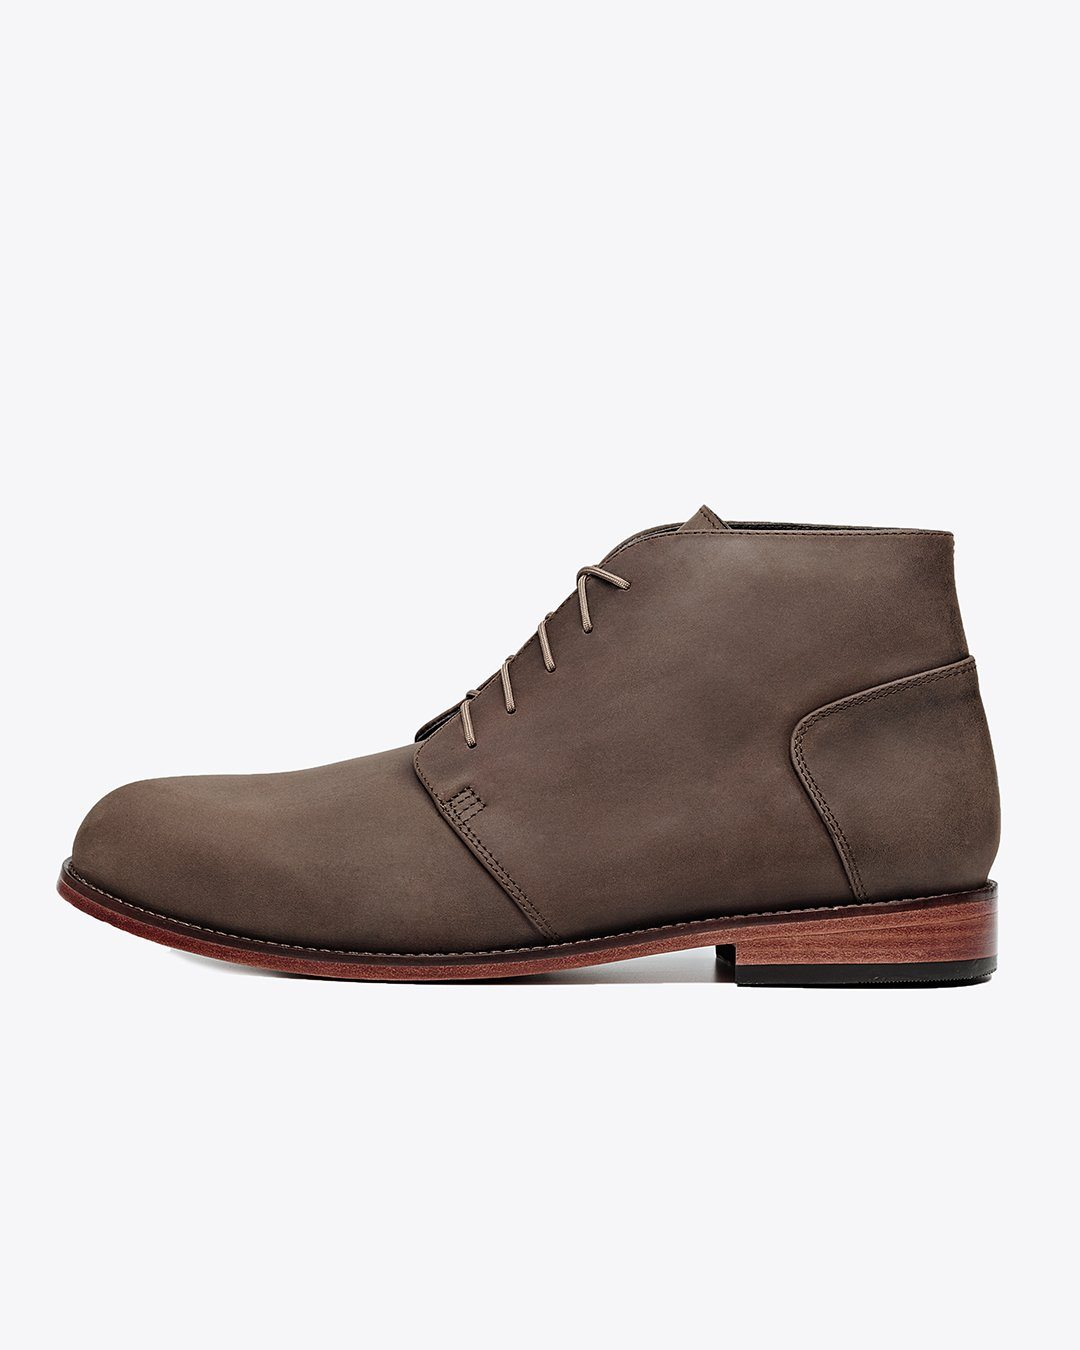 Nisolo Men's Emilio Chukka Boot Steel